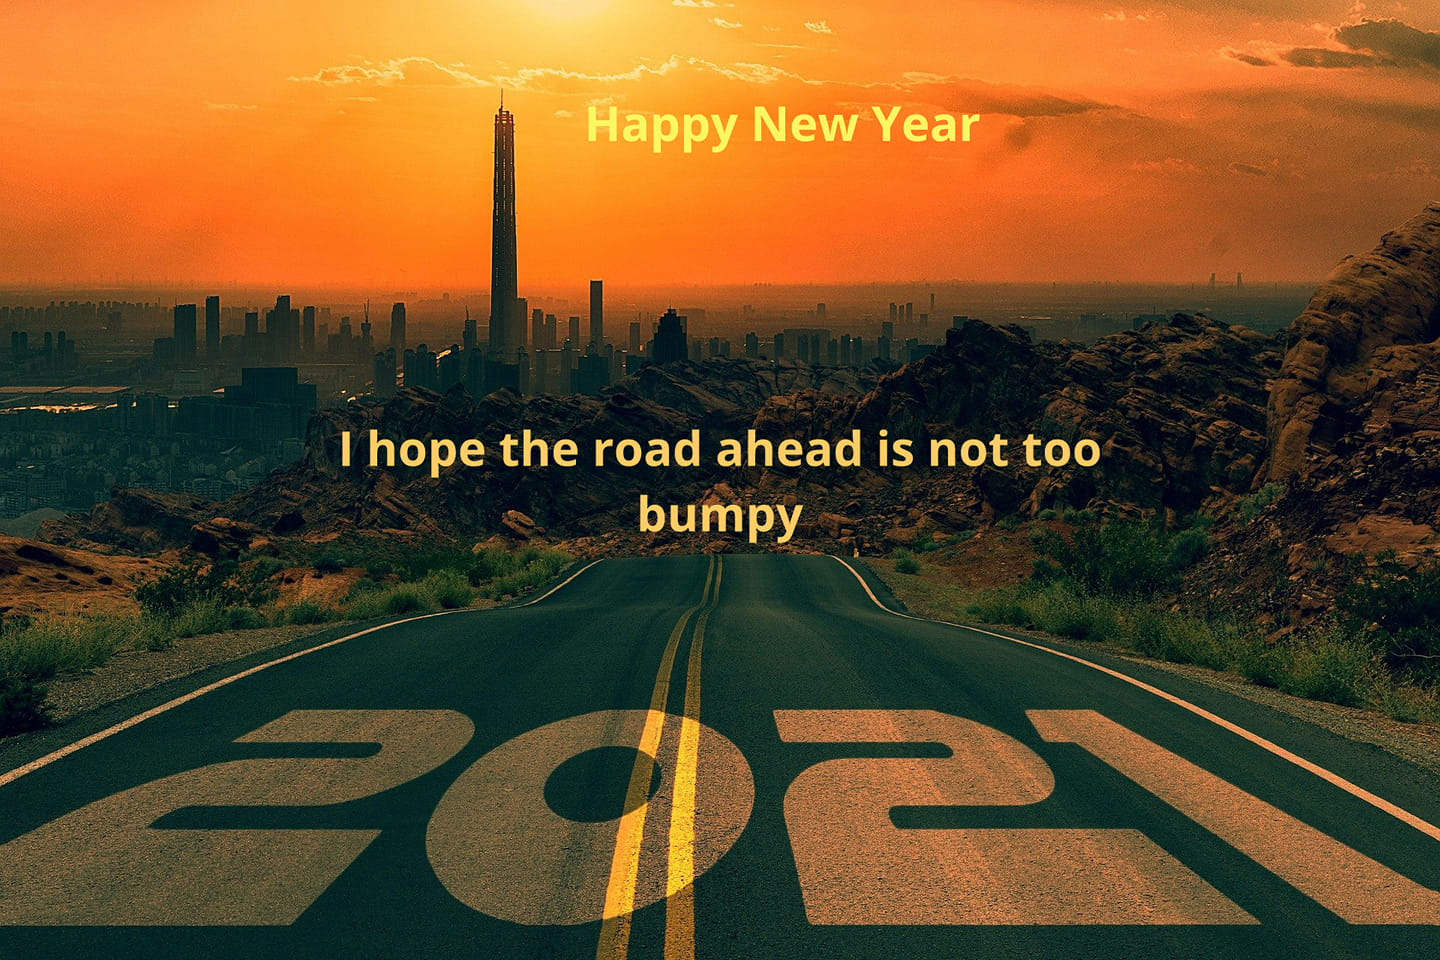 Happy New year I hope the road ahead is not too bumpy